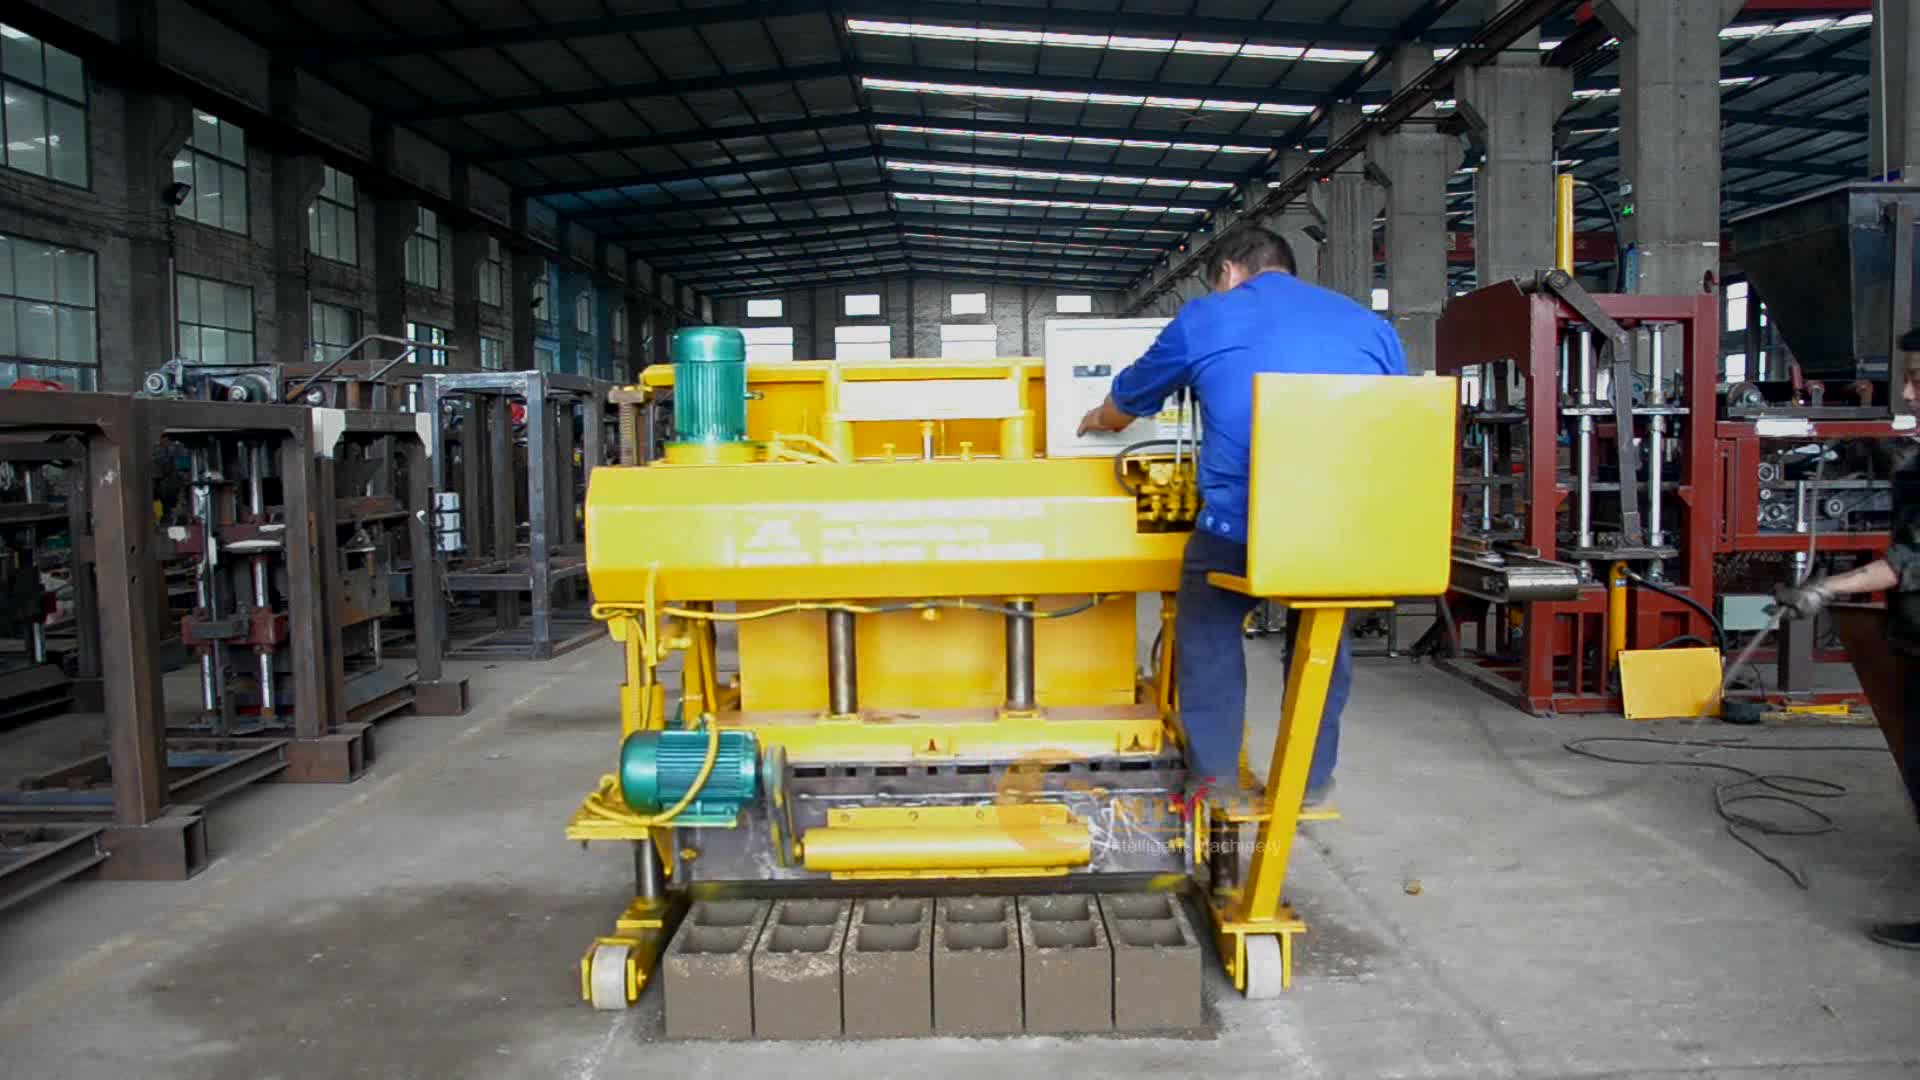 Qmy6 25 Mobile Block Moulding Machine Prices In Nigeria